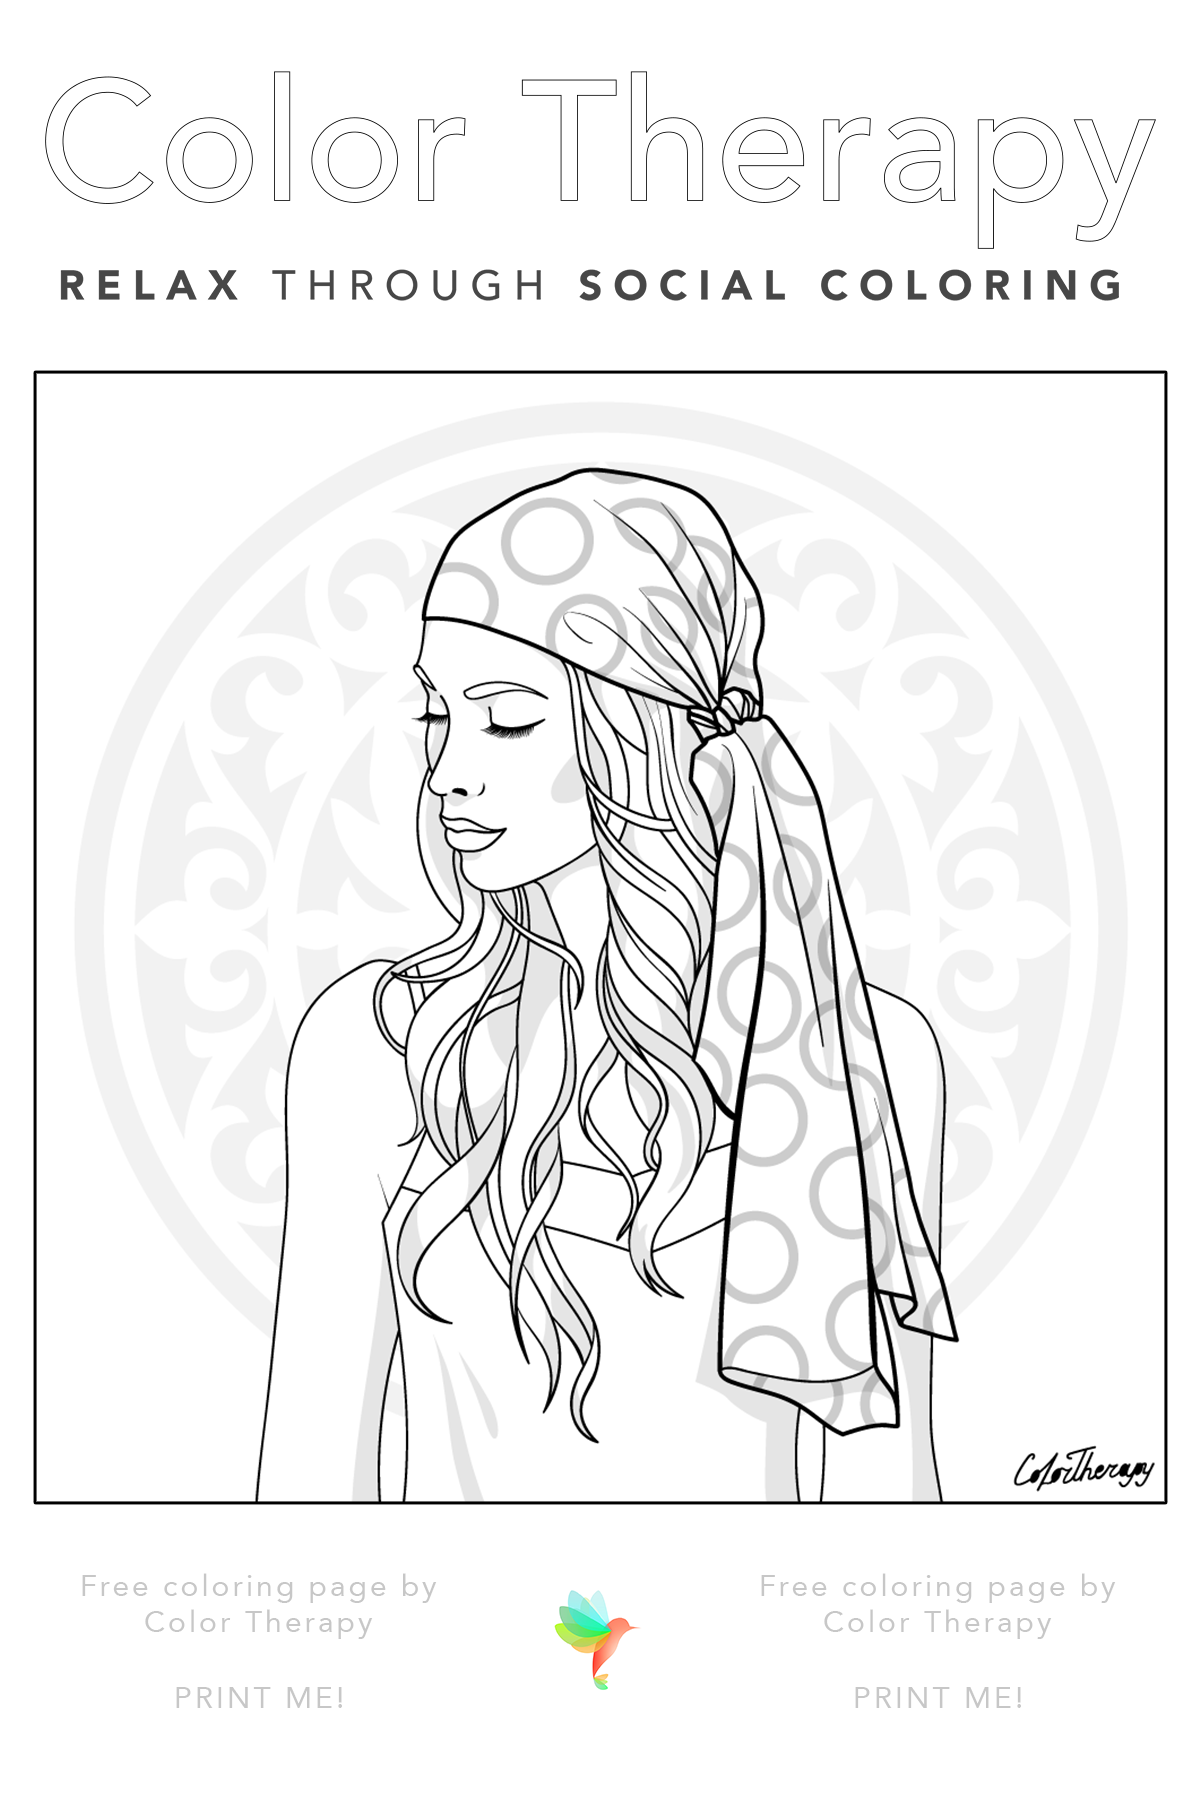 Color Therapy Gift Of The Day Free Coloring Page Coloring Pages Free Coloring Pages Angel Coloring Pages